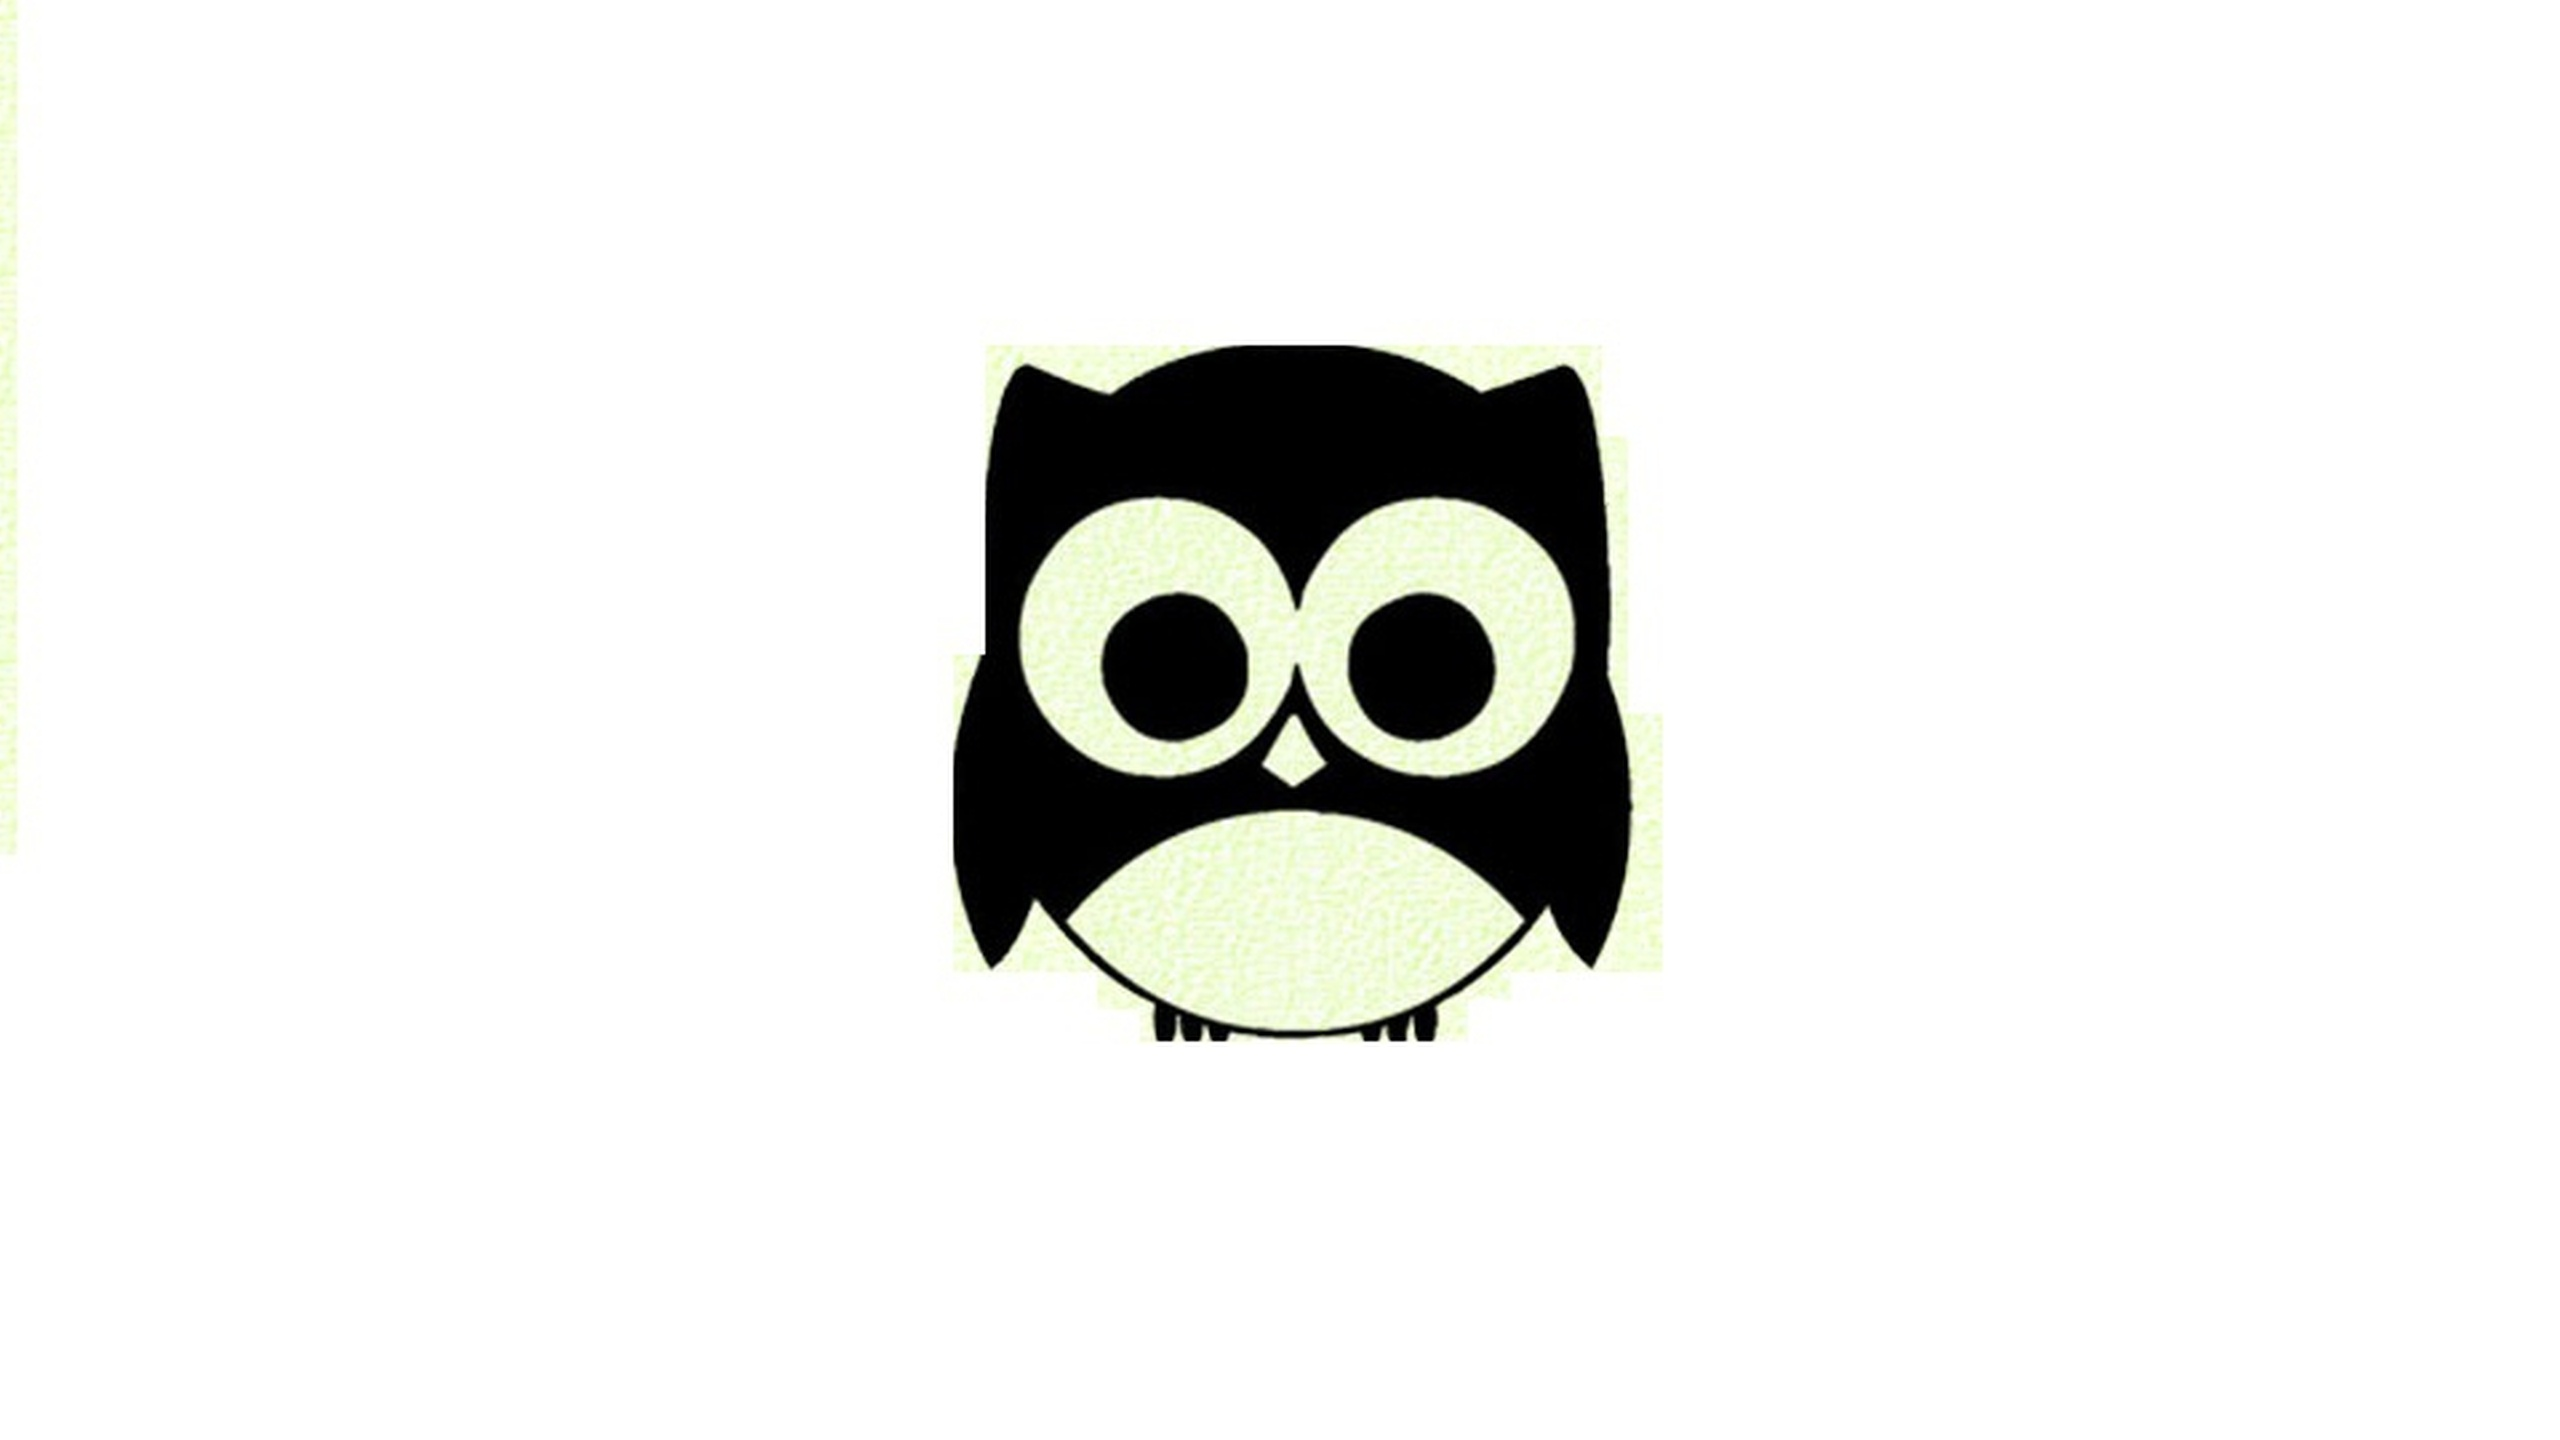 Cute Owl Decor Cute Owl Vinyl Wall Decal Home Decor